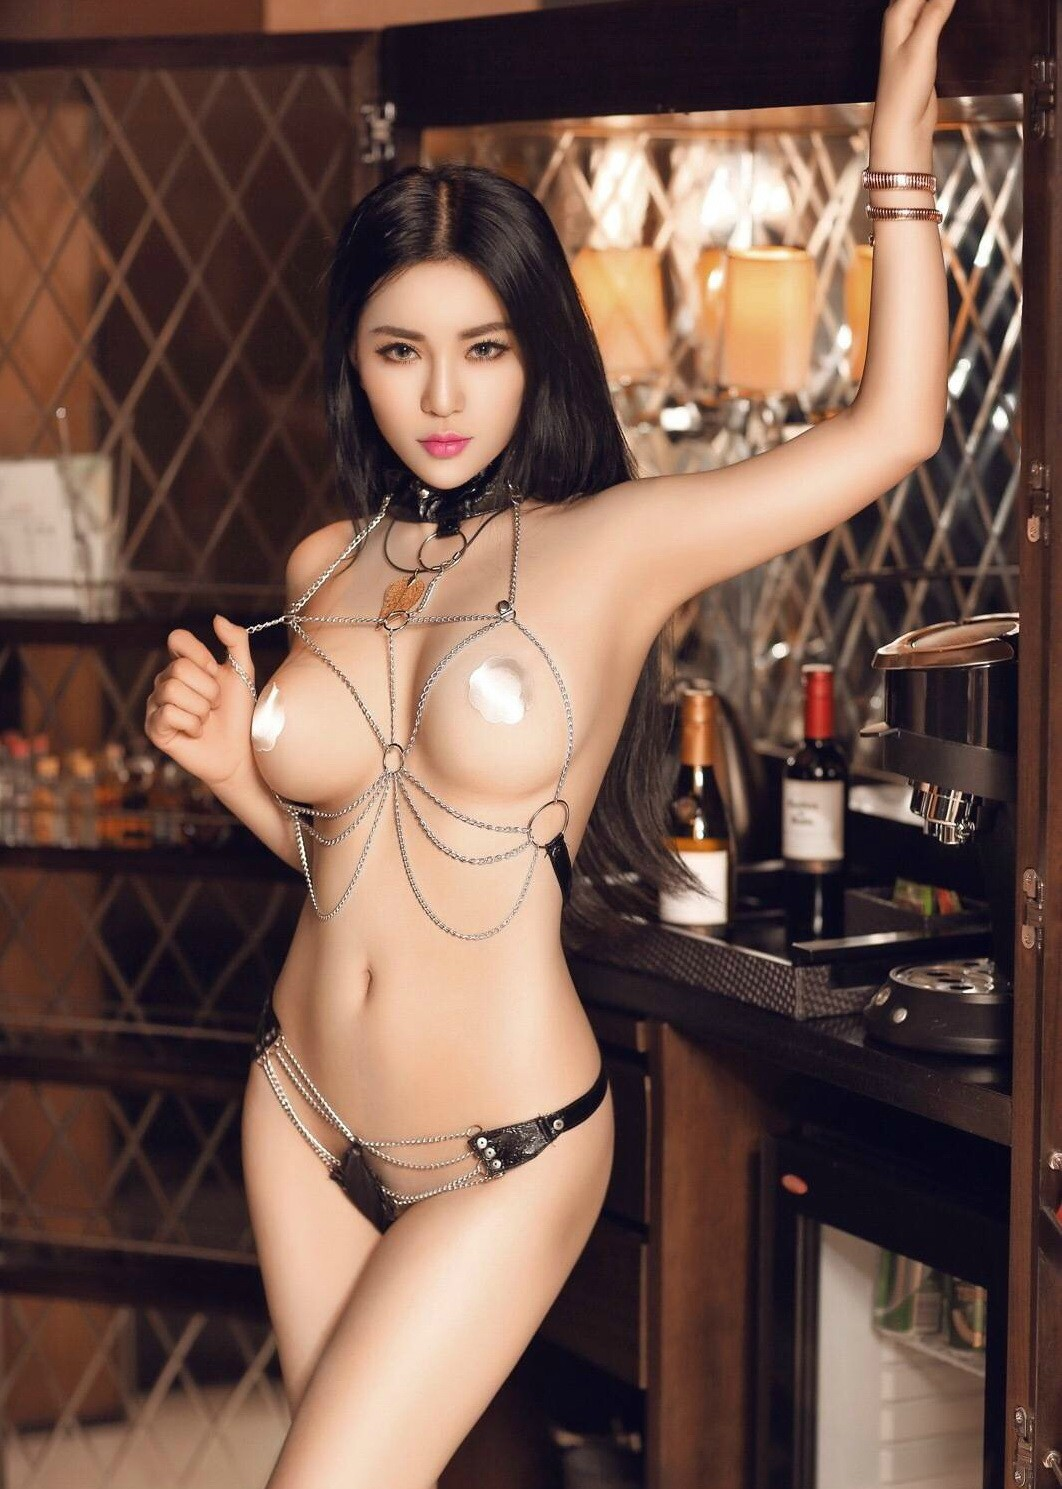 Wholesale China Factory Ladies Indian Nude Girls Photos Sexy Black Lace Underwear Lingerie